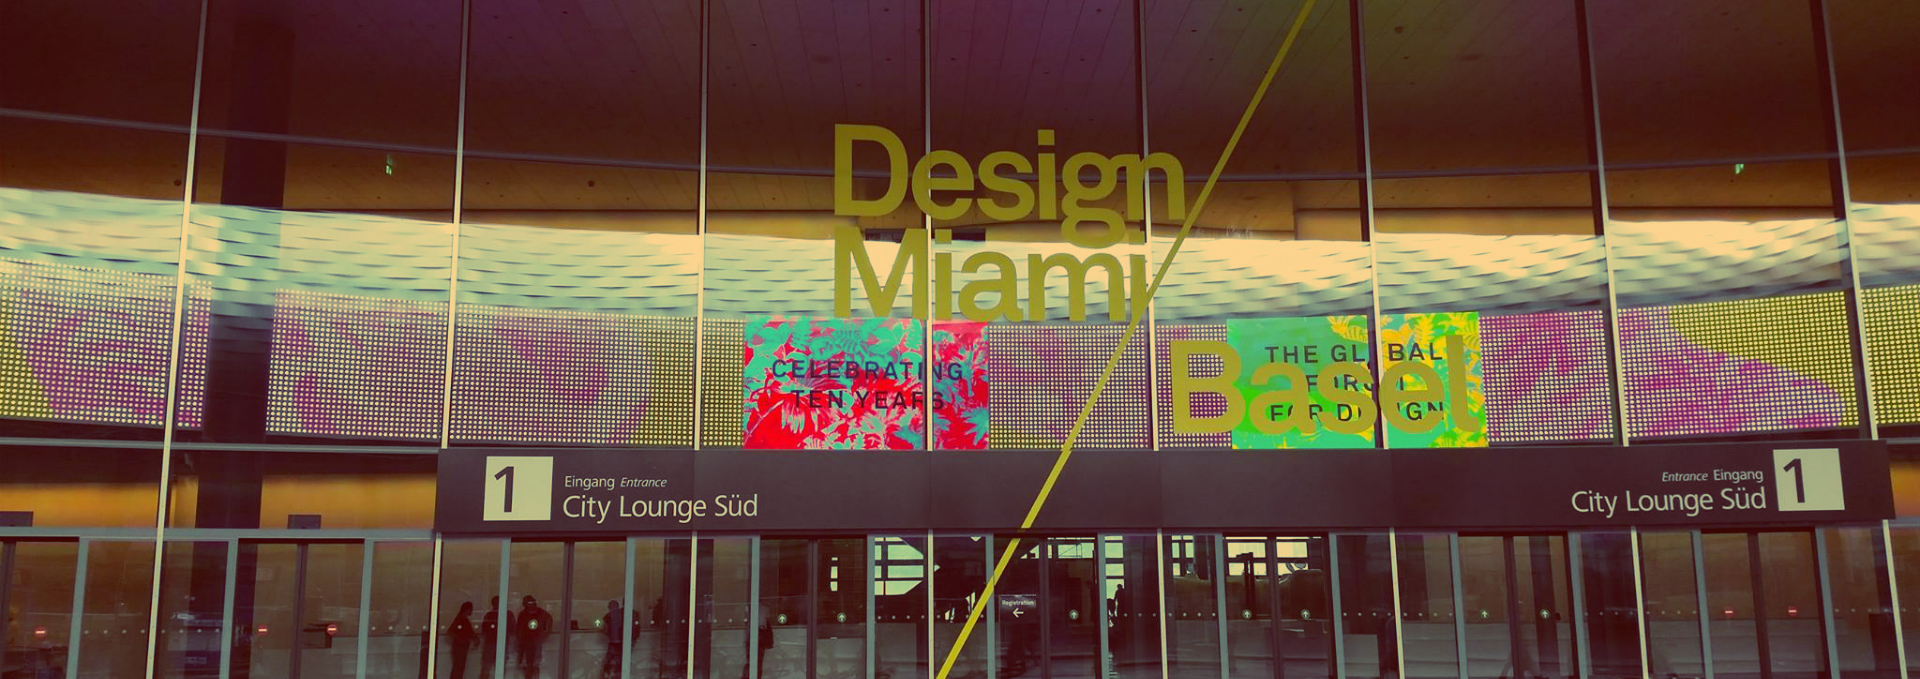 DESIGN AGENDA: Get Ready for the World's Best Design Events in June 2018 ➤ Discover the season's newest design news and inspiration ideas. Visit Daily Design News and subscribe our newsletter! #dailydesignnews #designnews #bestdesignevets #designevents #designagenda